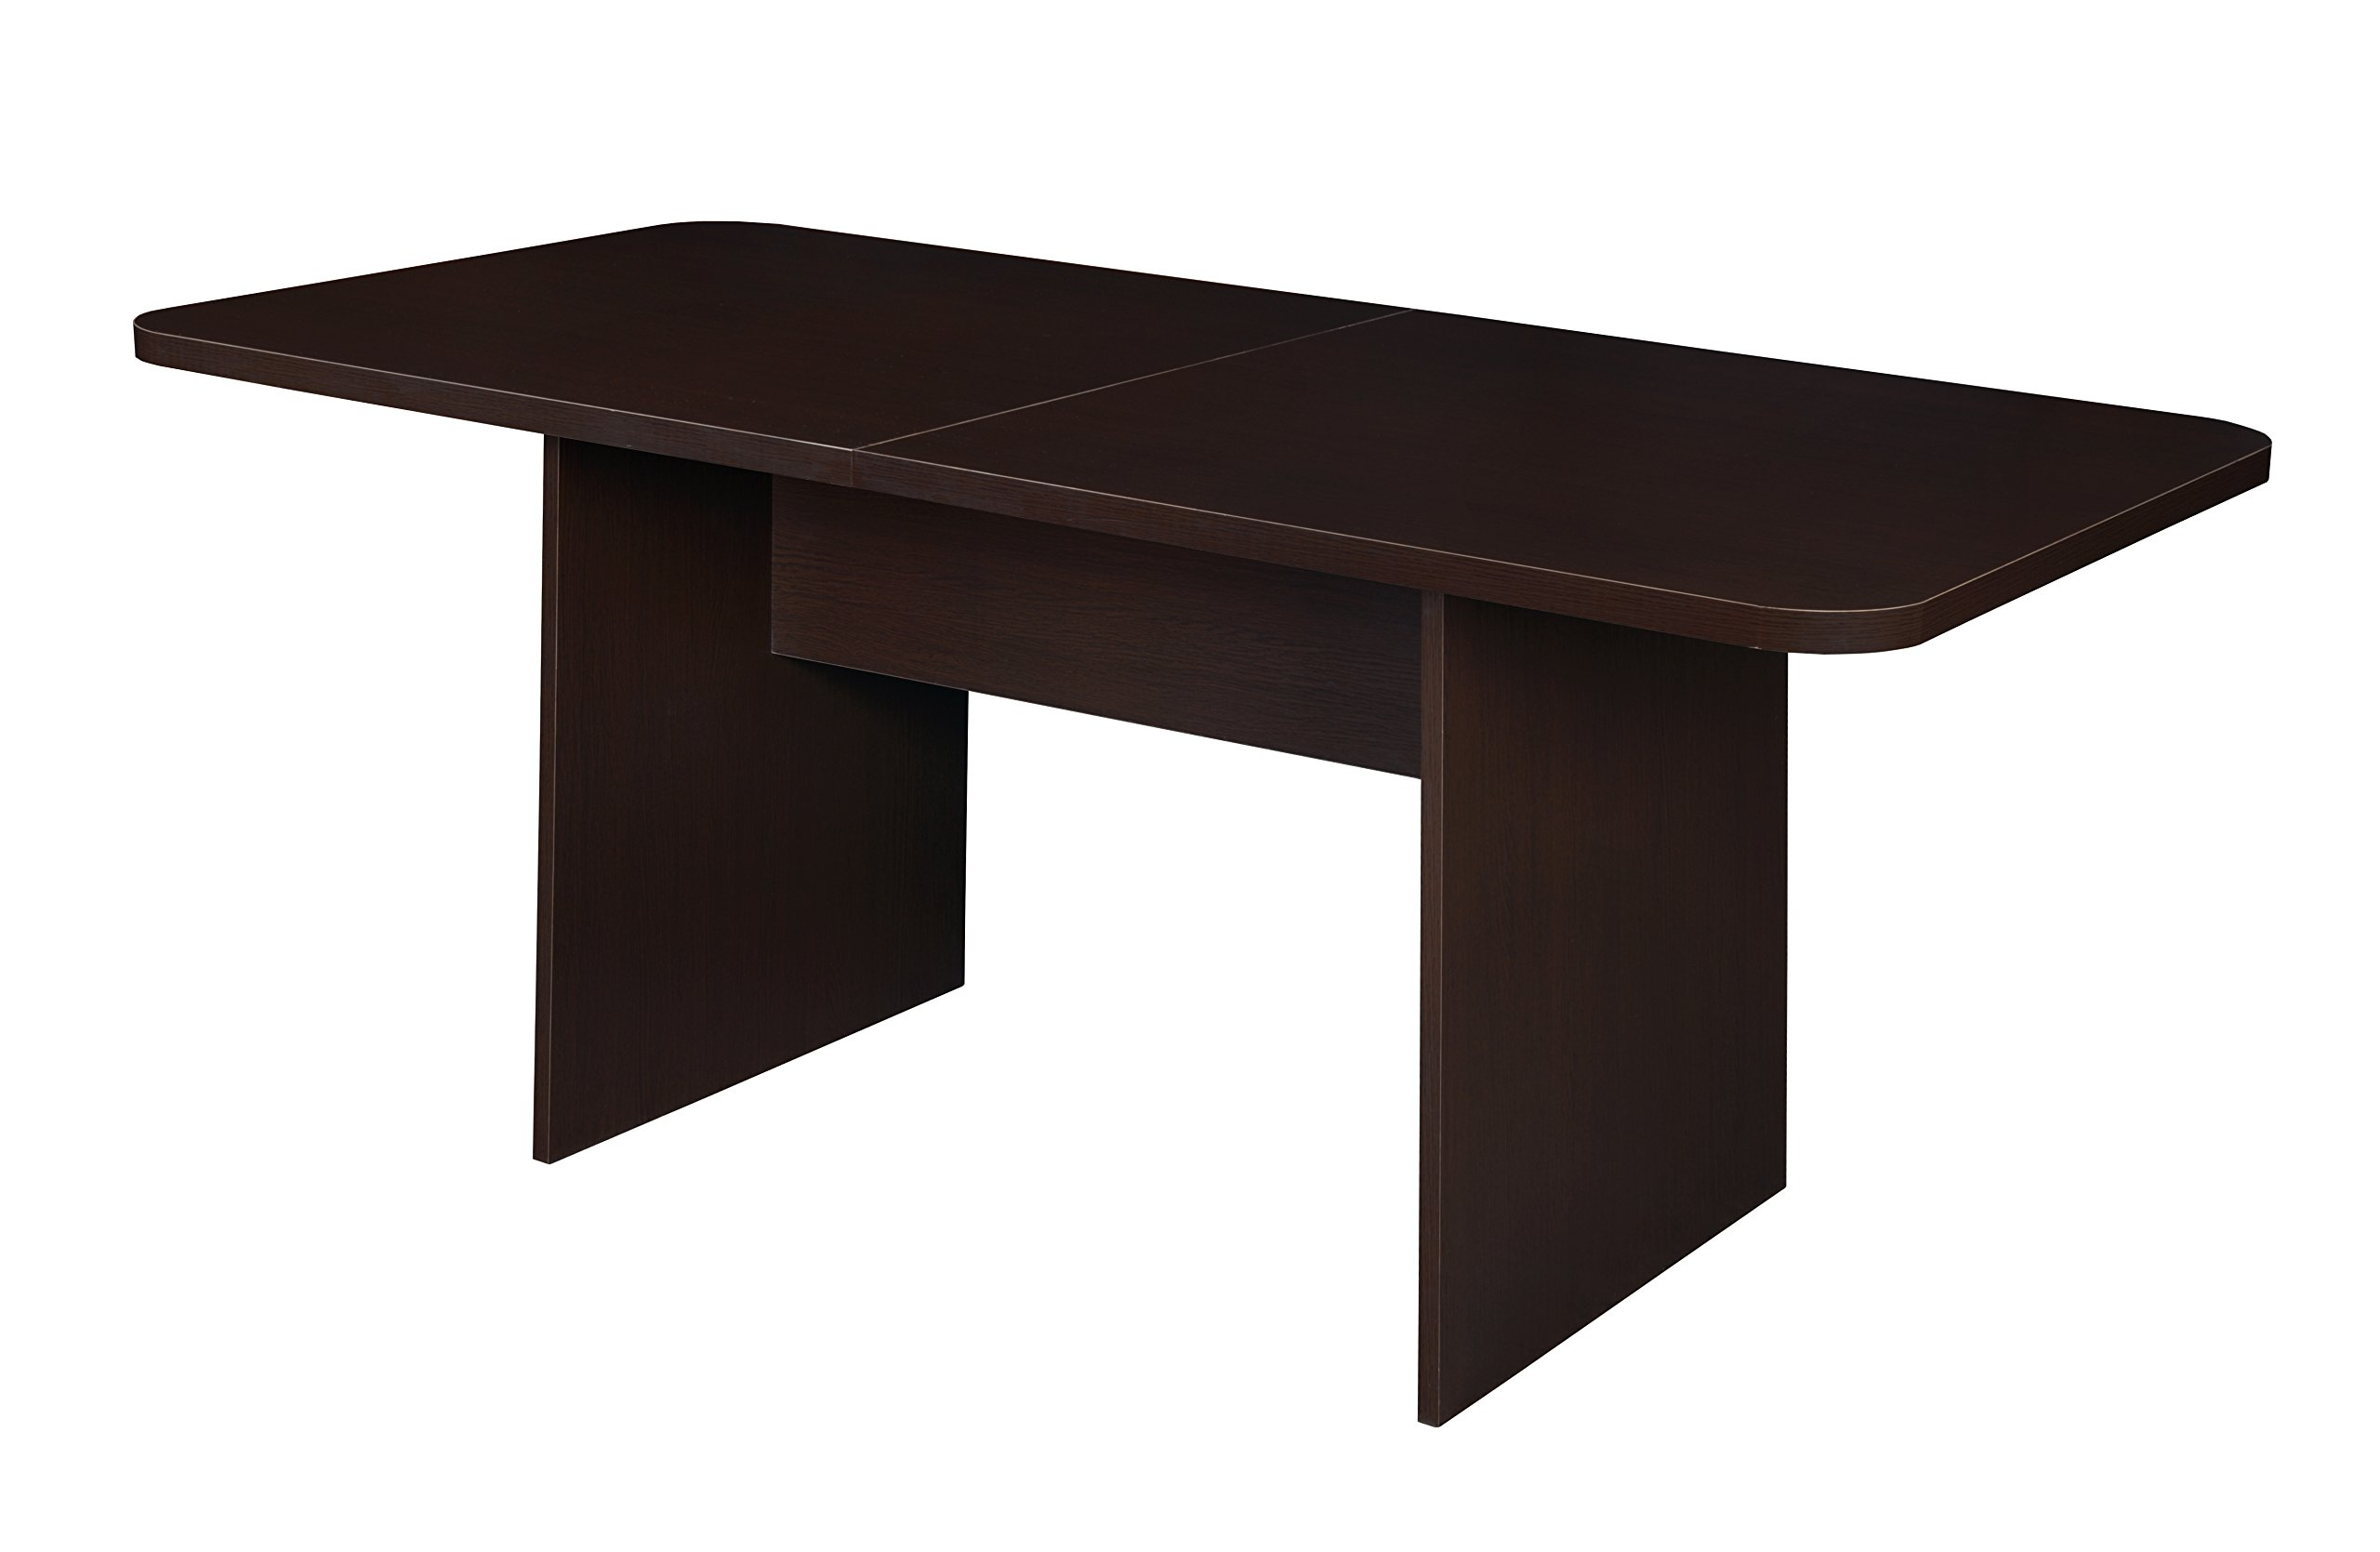 Niche NCT6834TF Mod Conference Table with No- with No-Tools Assembly, 6-Foot, Truffle